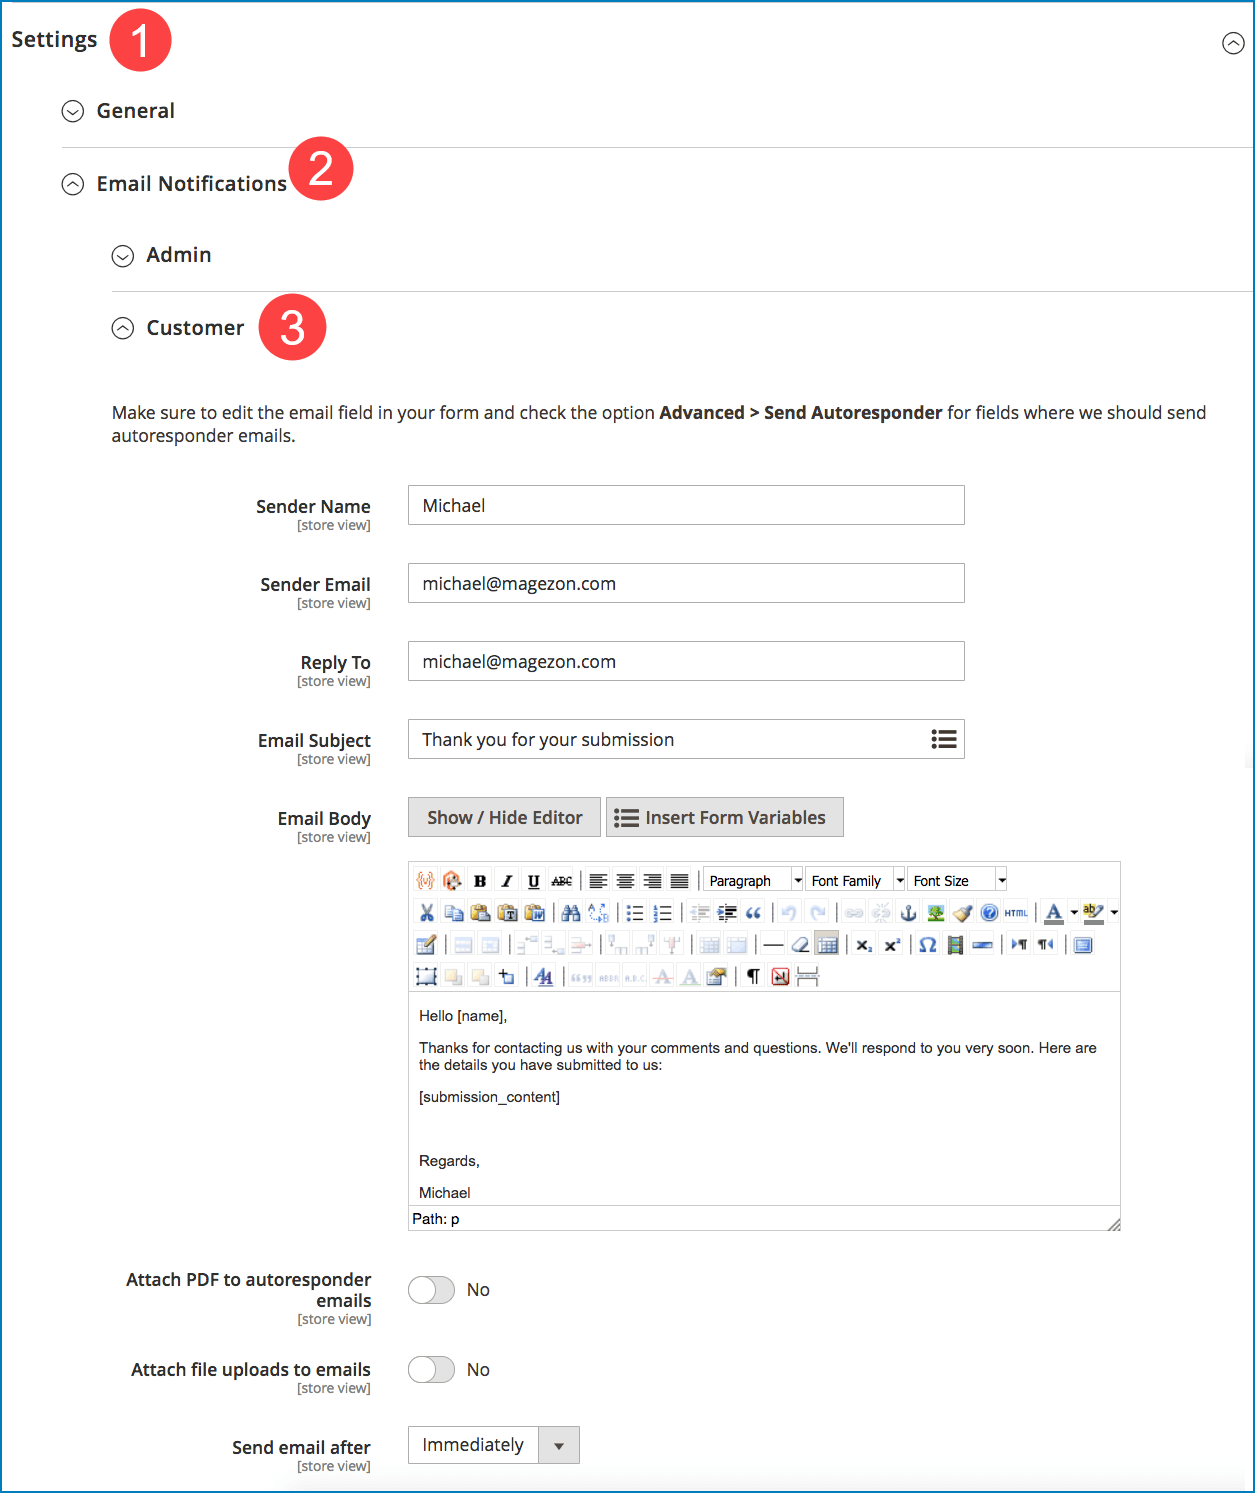 Email notifications to customers _ Customize emails